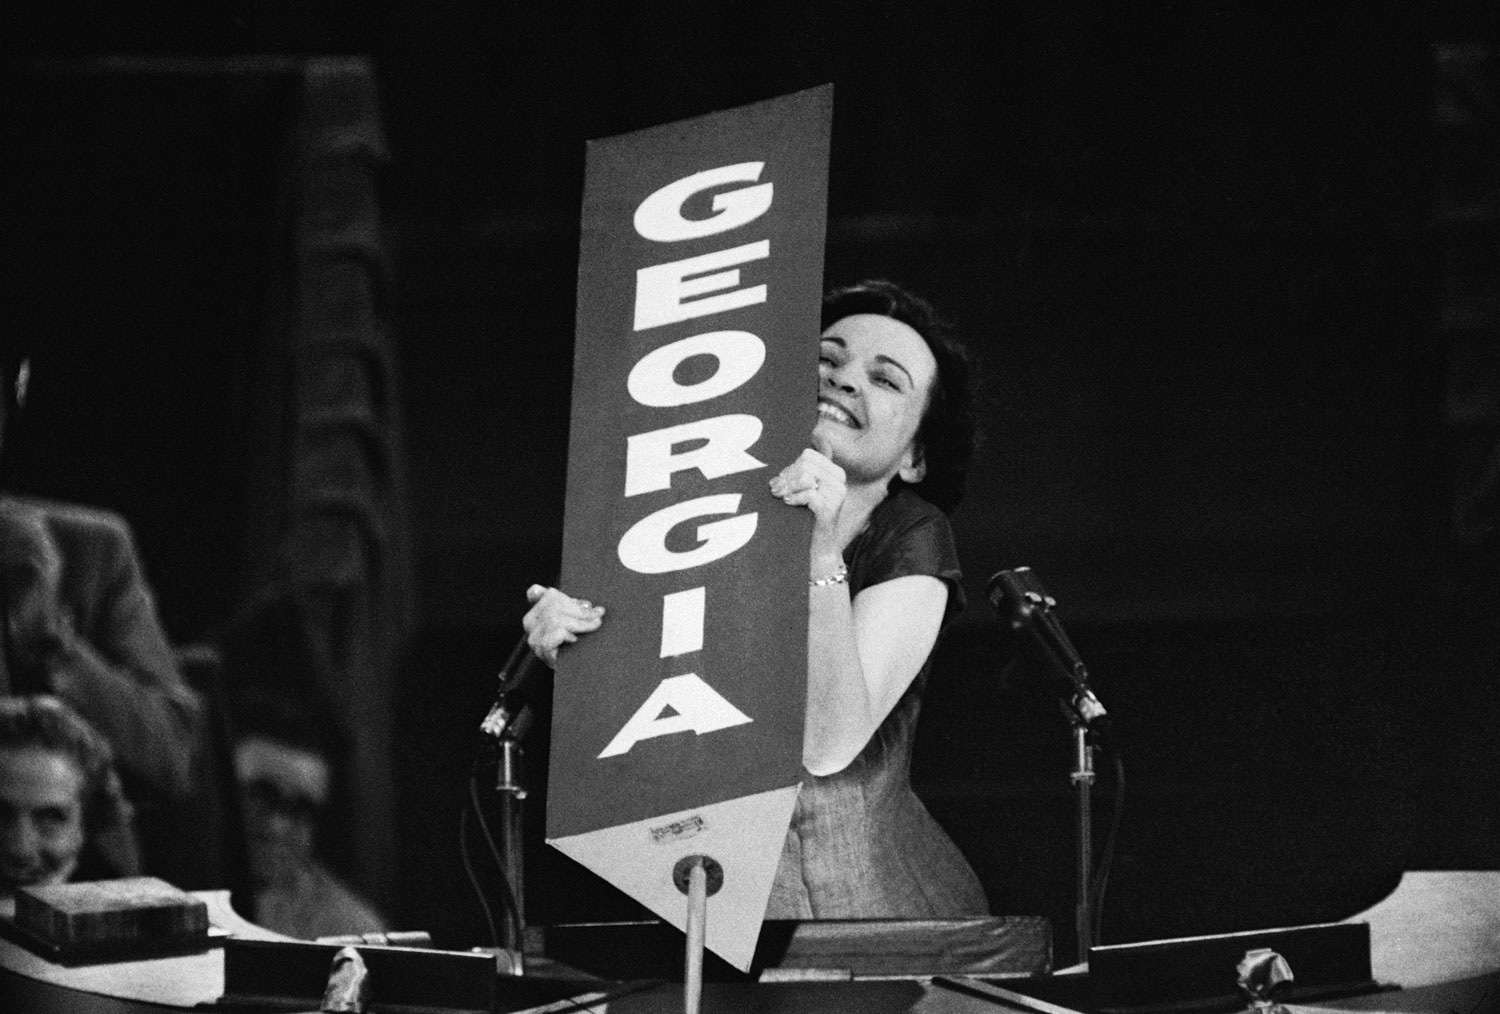 Georgia Congresswoman Iris Blitch, a staunch segregationist during her time in Congress, being saluted by her state's delegates before her speech at the 1956 Democratic National Convention in Chicago.